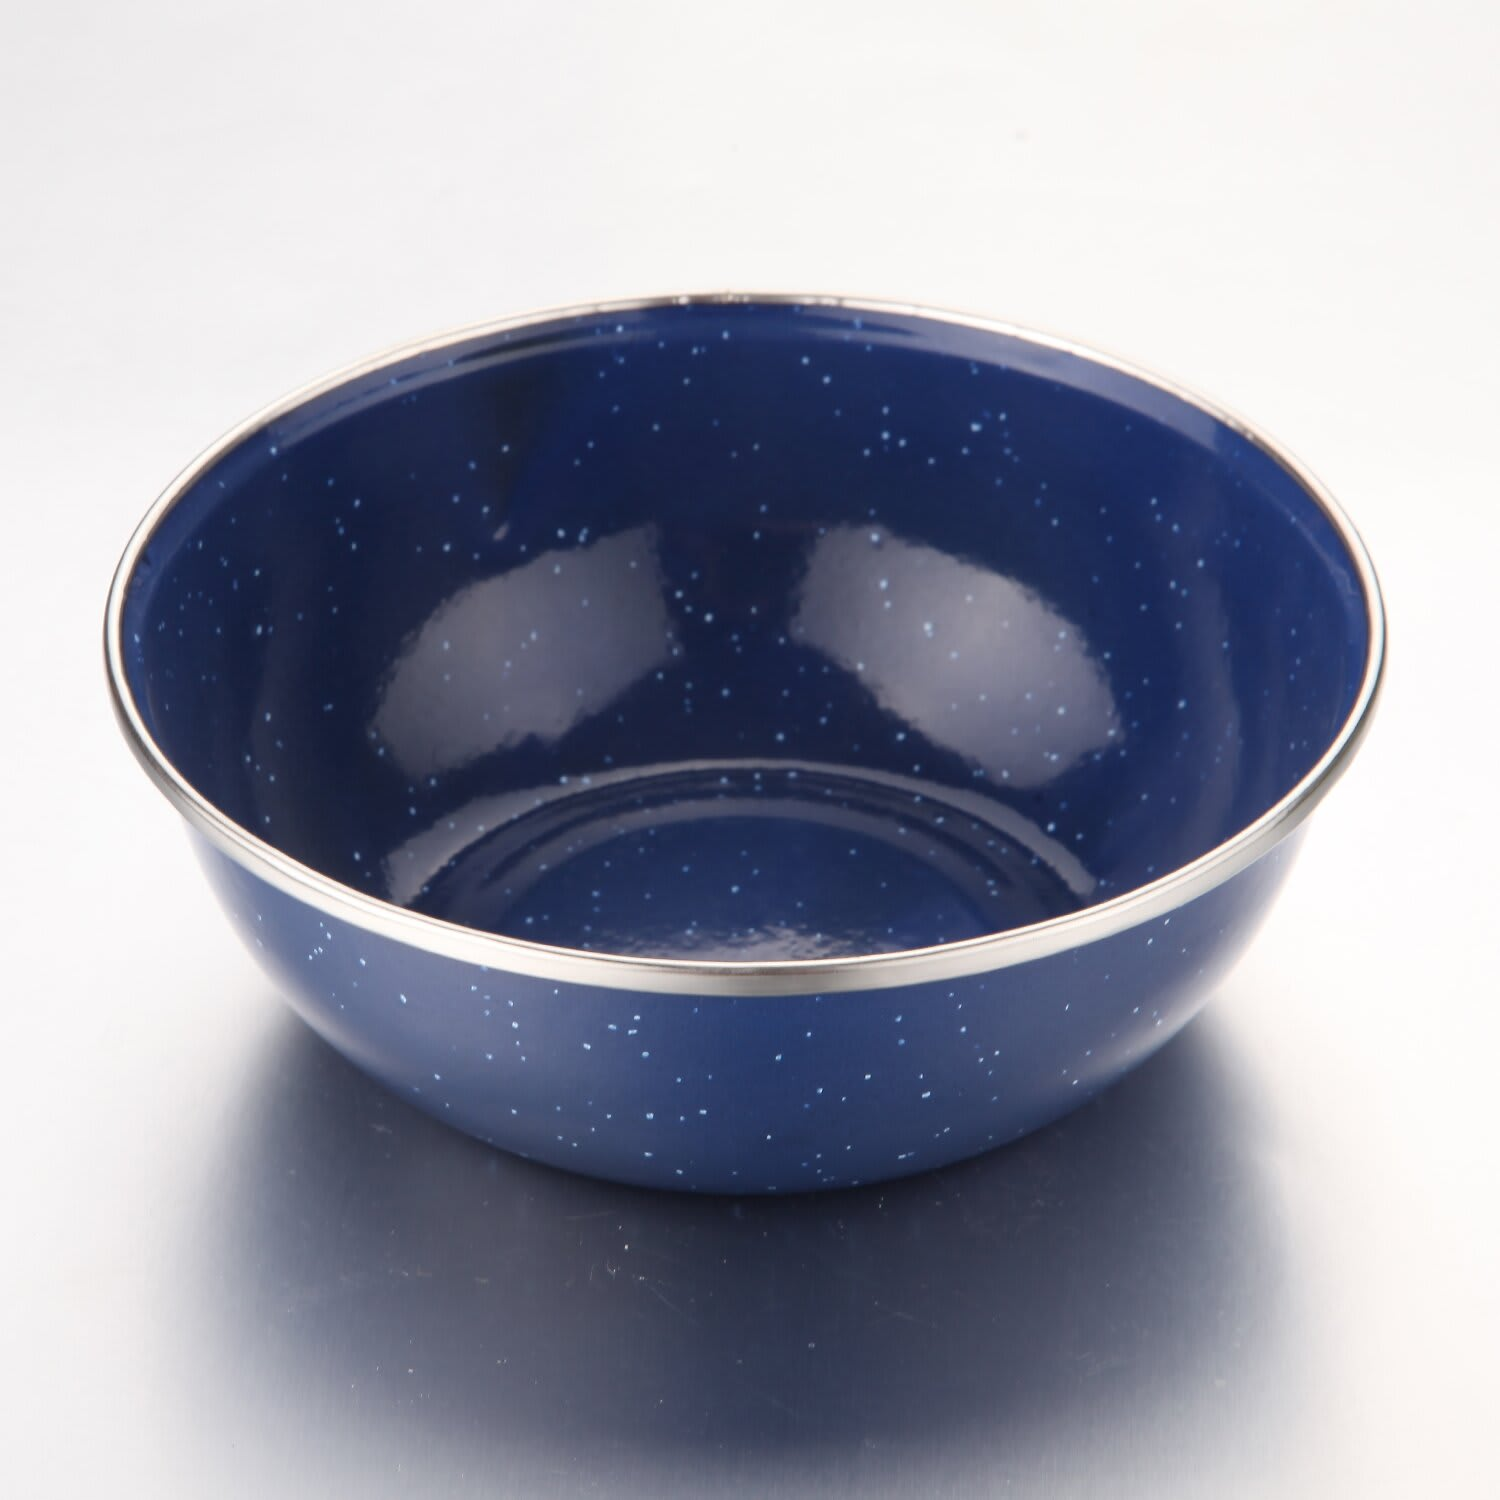 NATURAL INSTINCTS ENAMEL BOWL BLUE